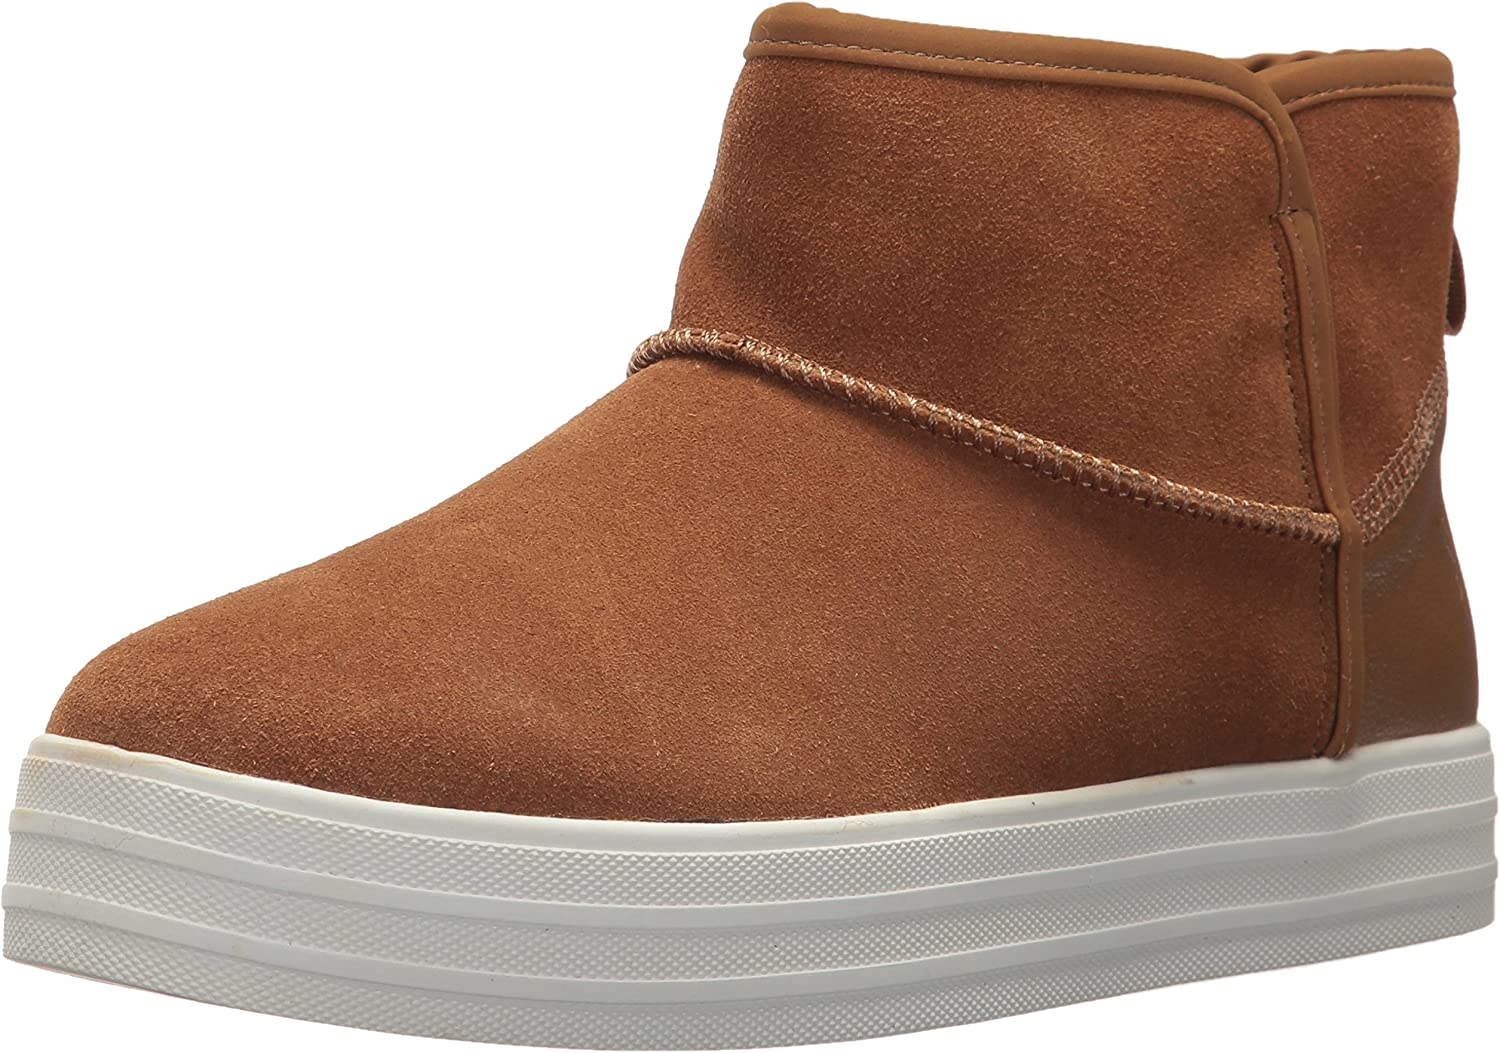 Skechers Womens Double Up - Chukka Ankle Bootie